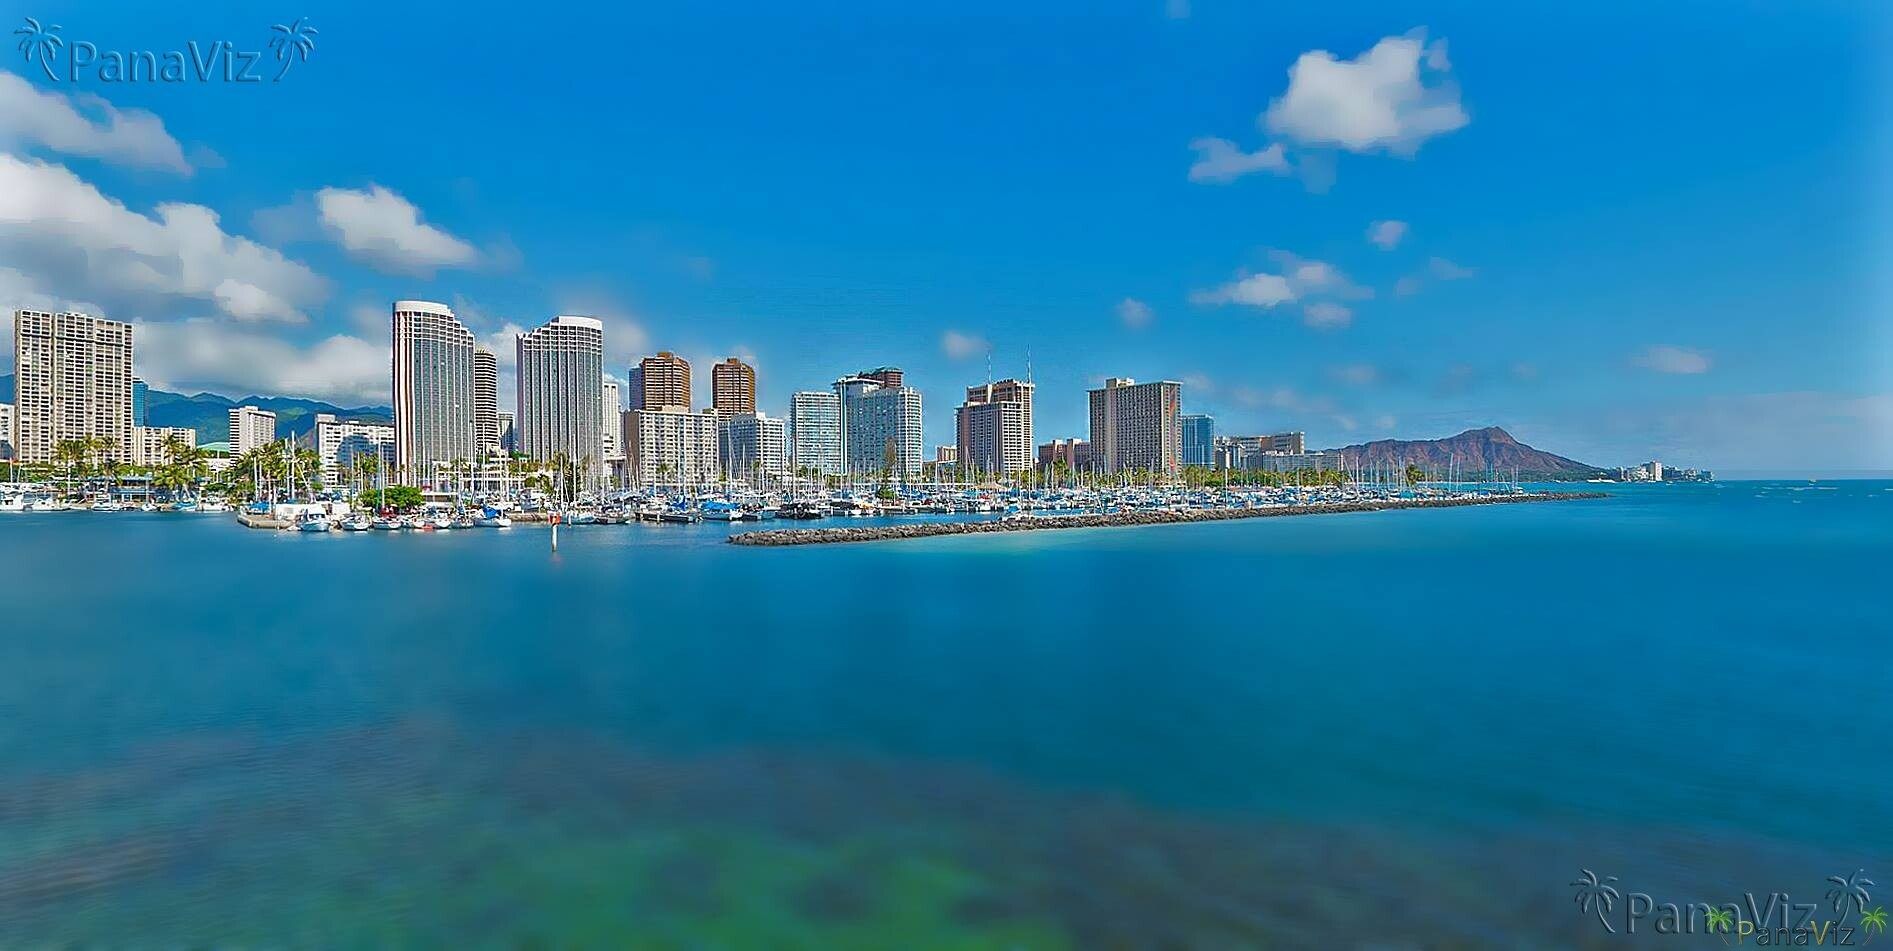 Waikiki as seen from Kaka'ako.